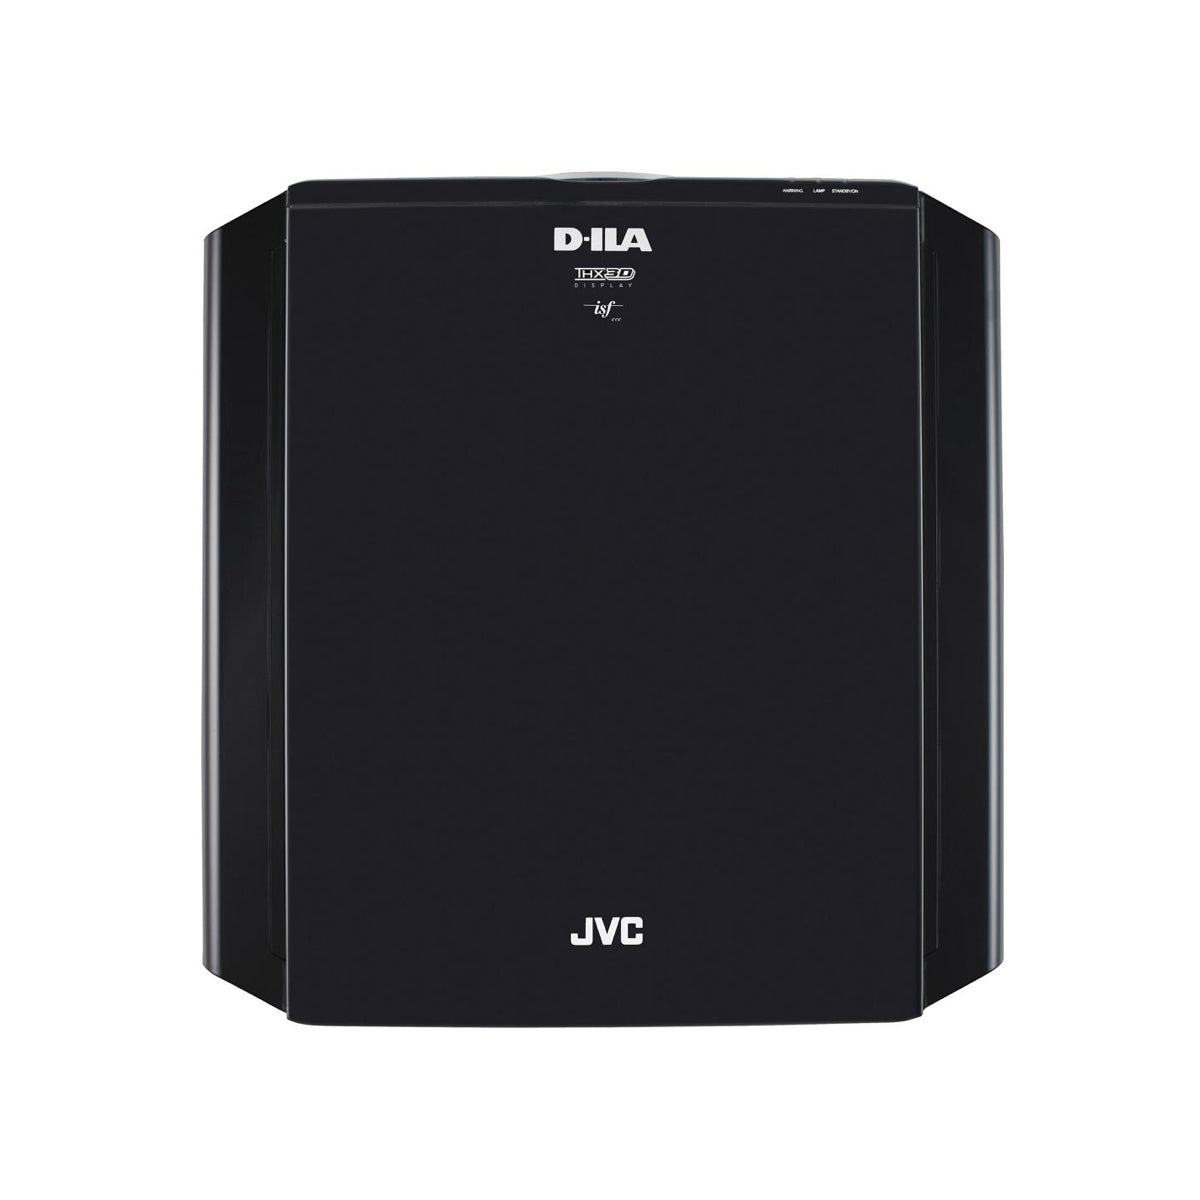 JVC DLA-X7900BE (4K e-shift5 Projector) - AVStore.in